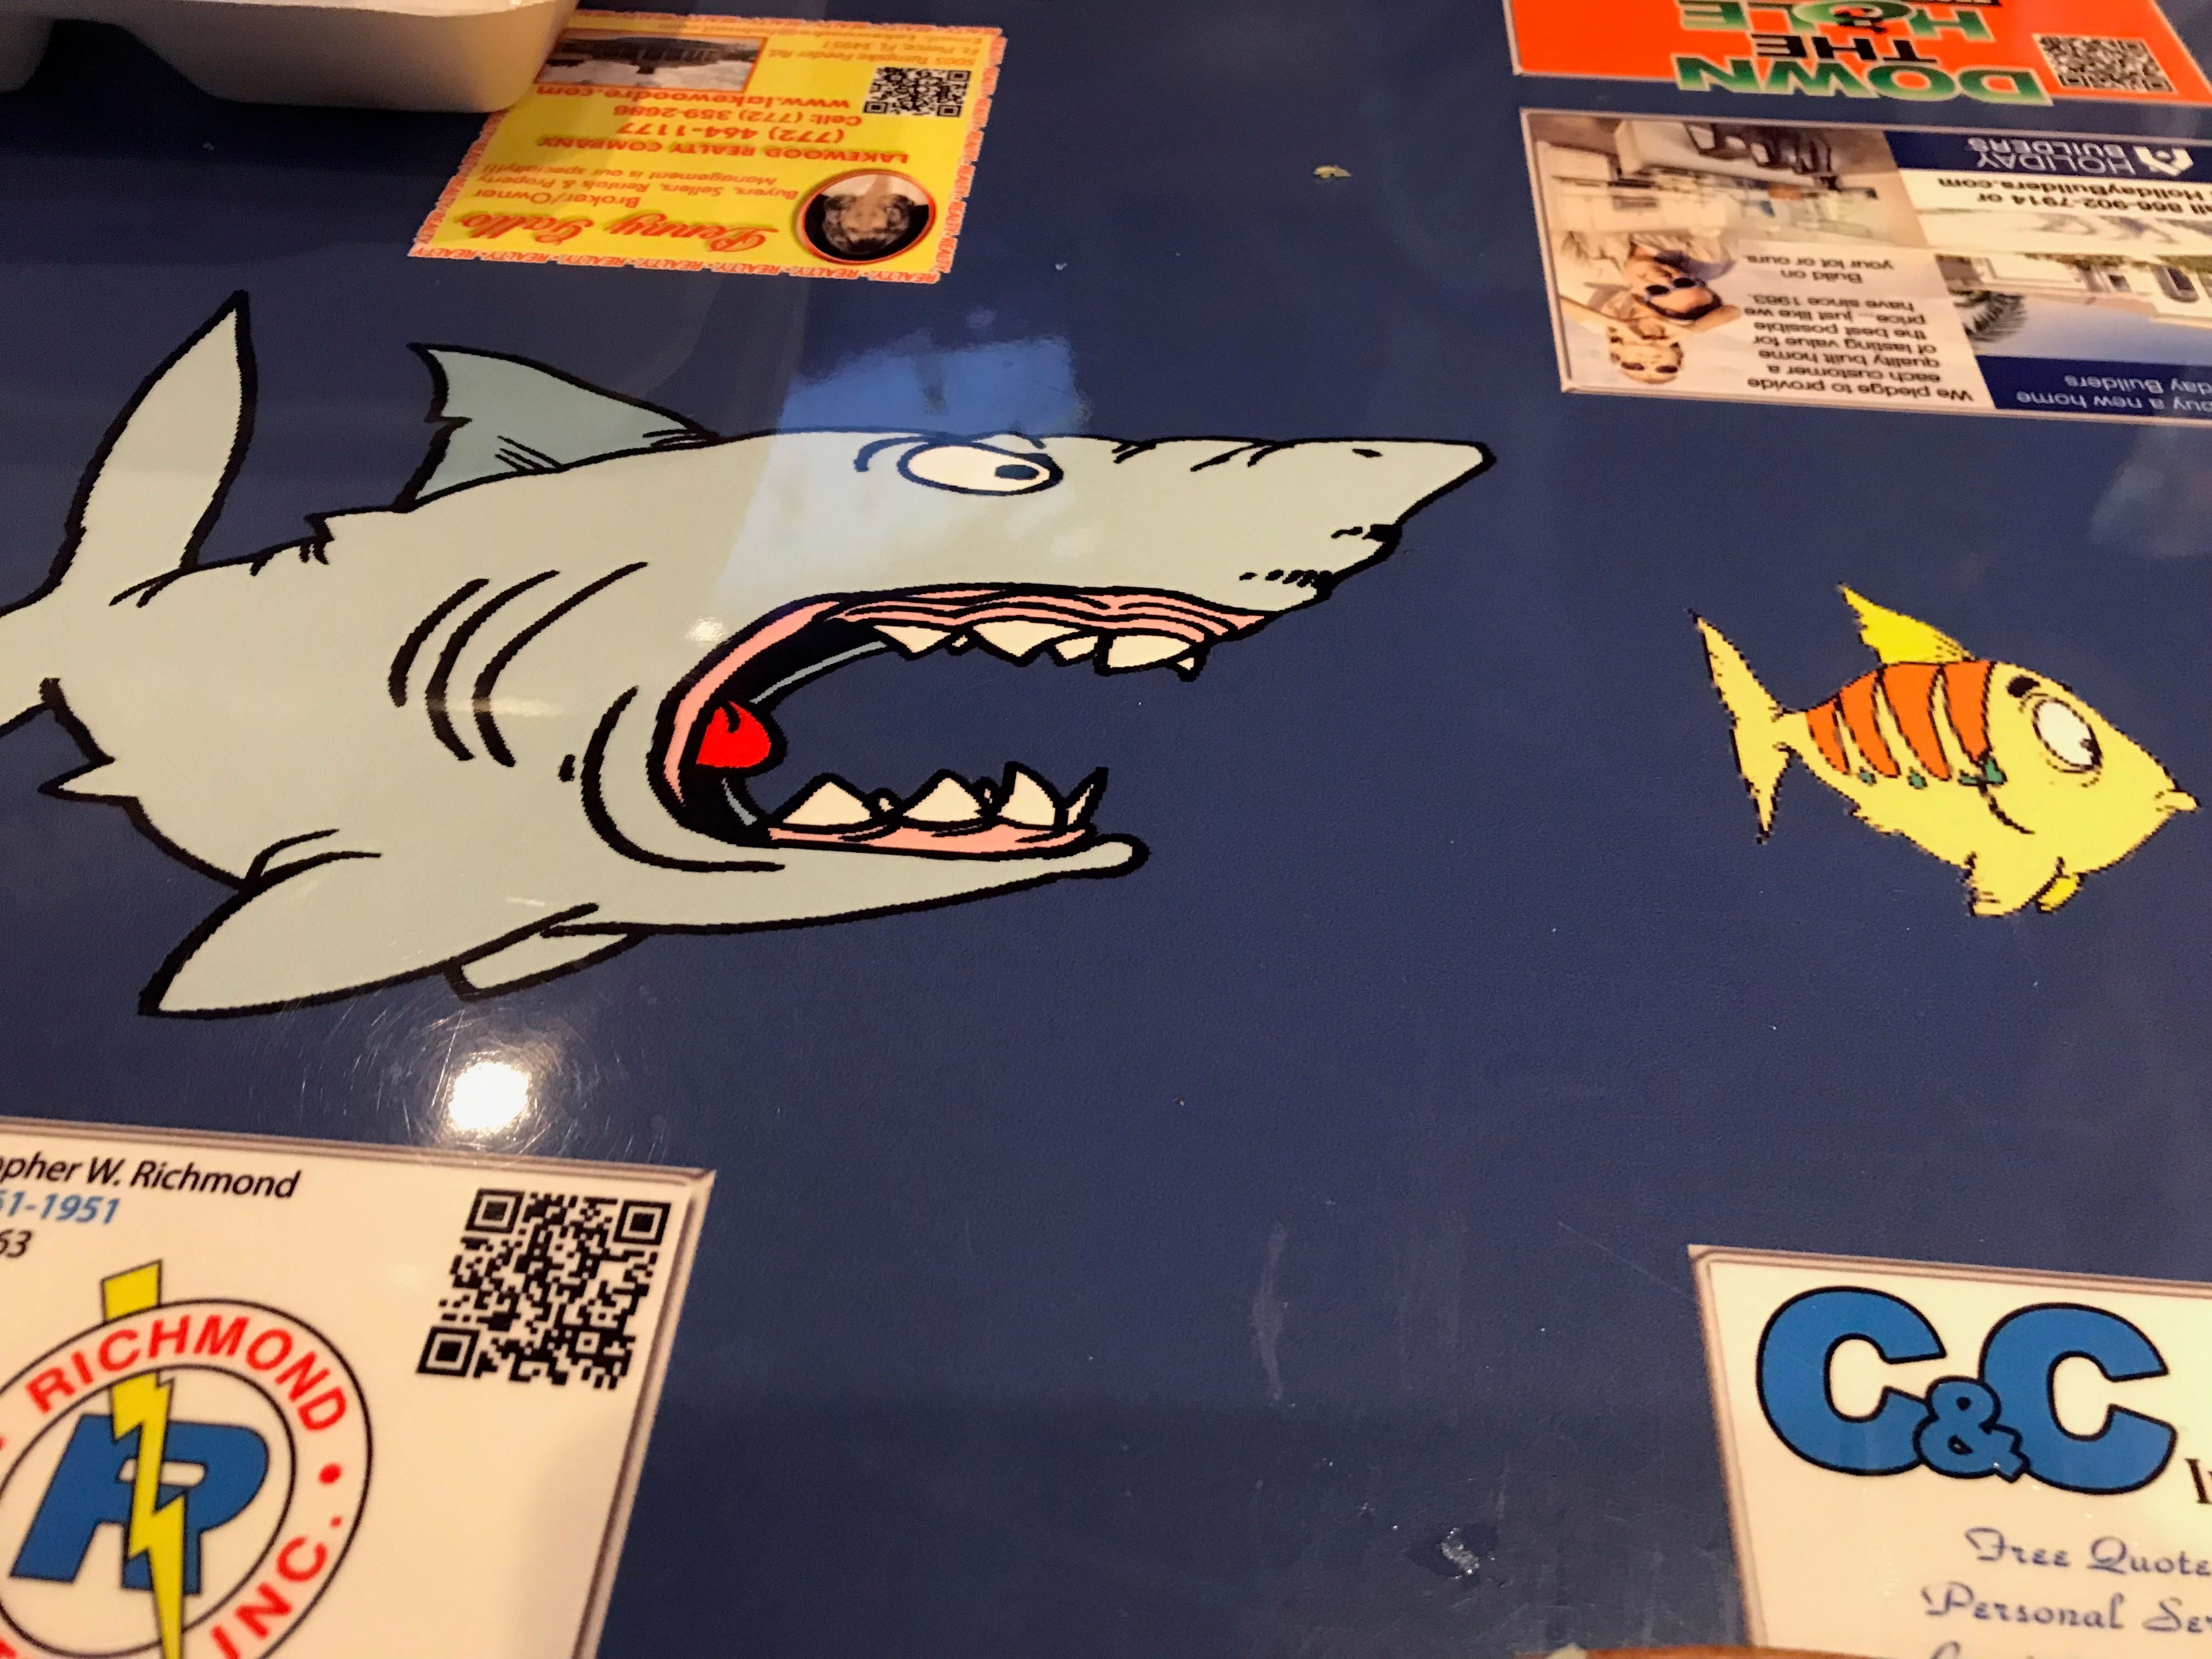 Lefty's has a surfing theme but watch out for sharks.